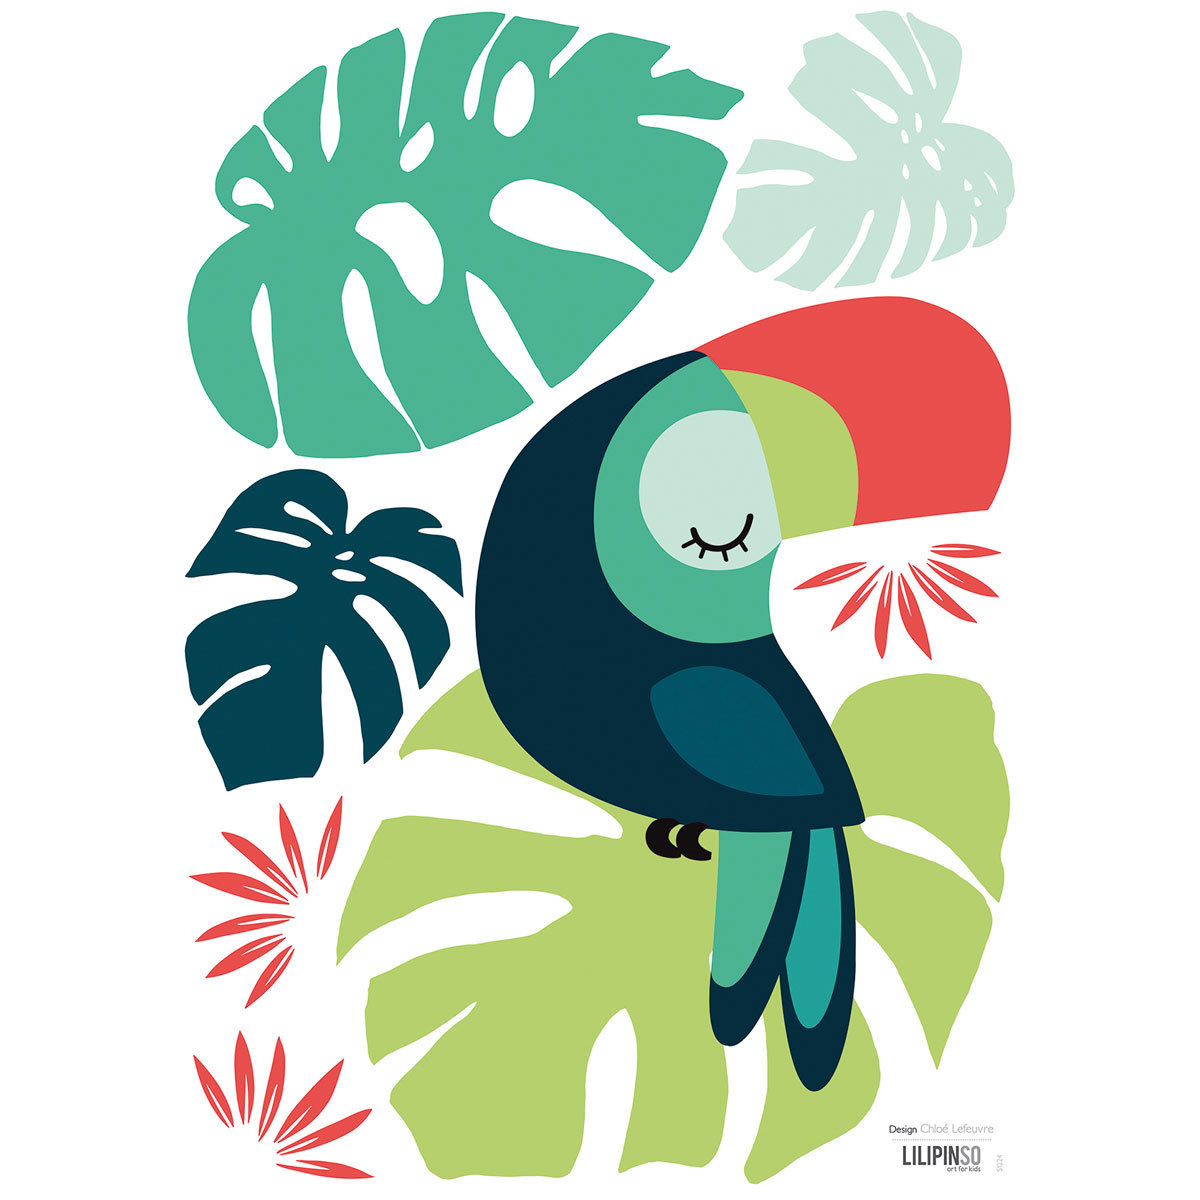 Sticker Tropica - Stickers A3 - Monstera et Toucan Tropica - Stickers A3 - Monstera et Toucan